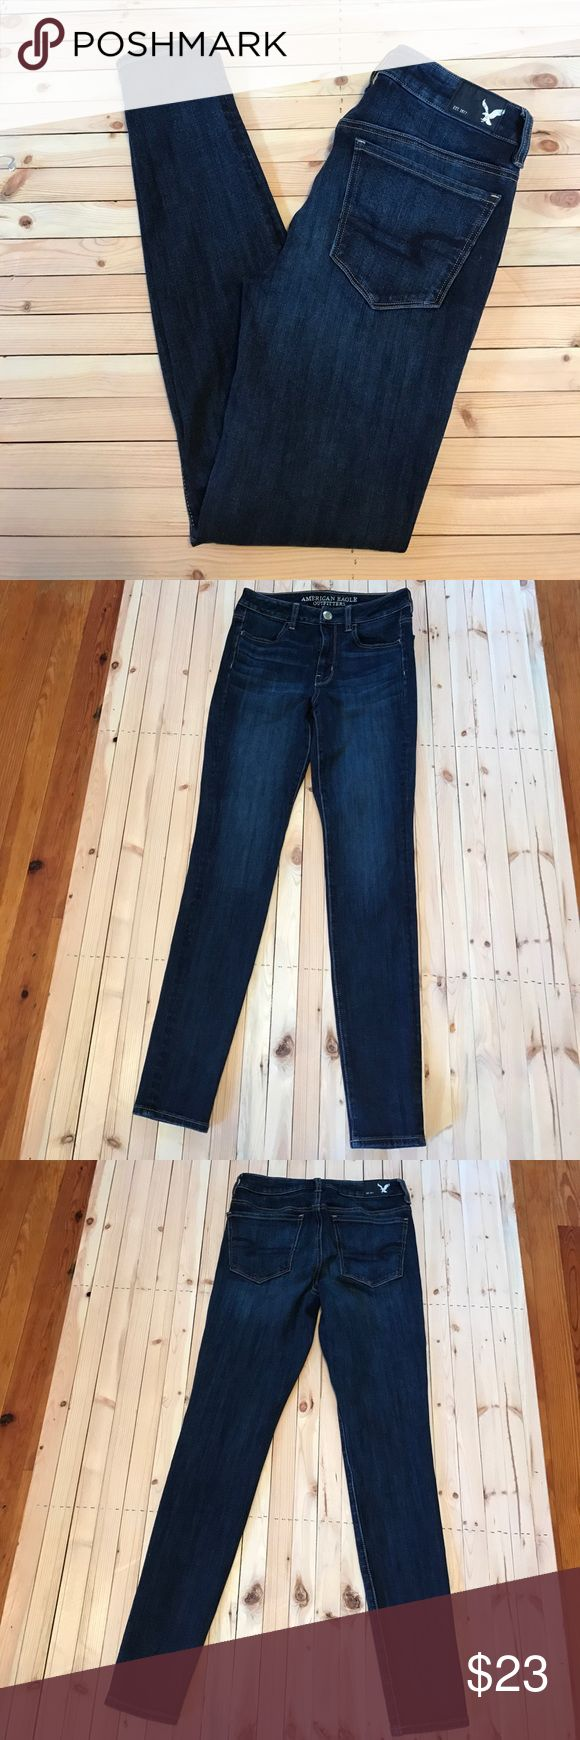 2R AEO Hi-Rise Jeggings Dark Wash AEO Hi-Rise Jeggings. Dark wash. Size 2 REG. In excellent gently used condition! No stains and no signs of wear. 360degree super stretch. Check out my closet for more AEO jeans! Bundle to save ☺️ (the button does have some scratches on it) American Eagle Outfitters Jeans